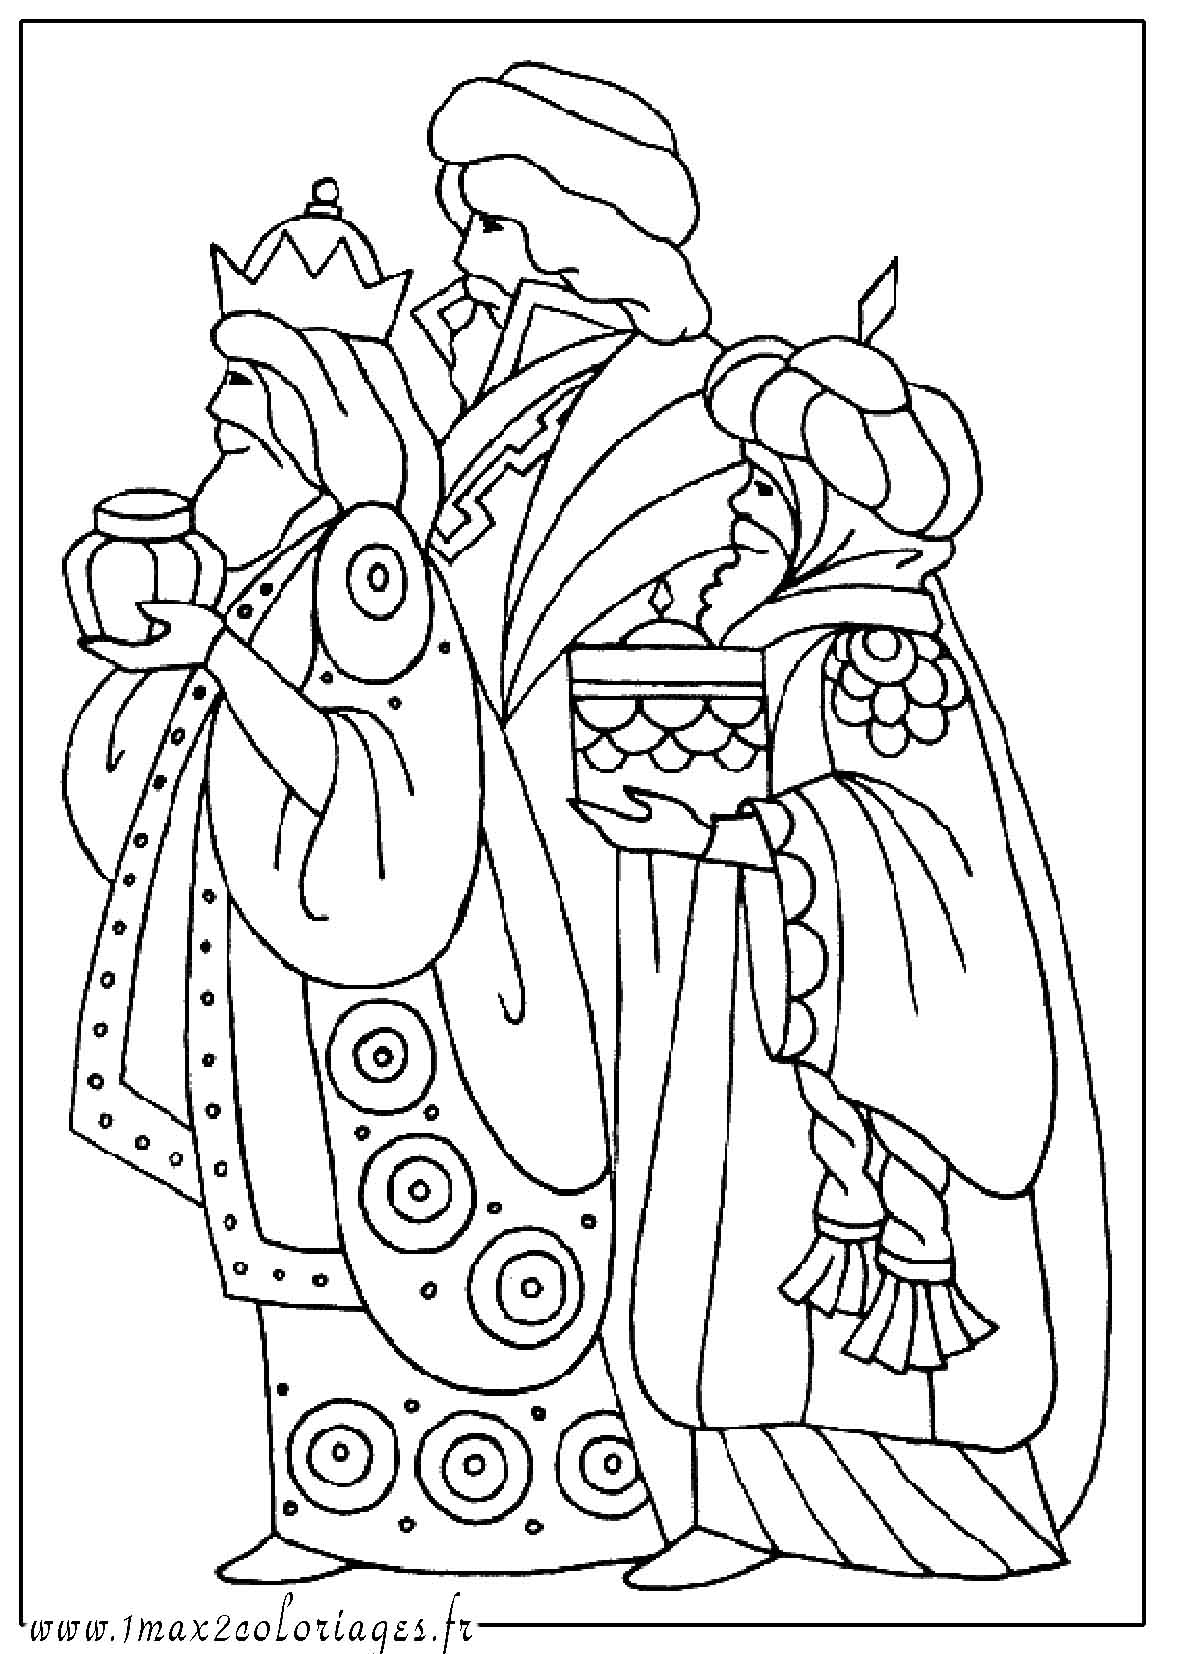 Pin coloriage creche noel on pinterest - Dessin rois mages ...